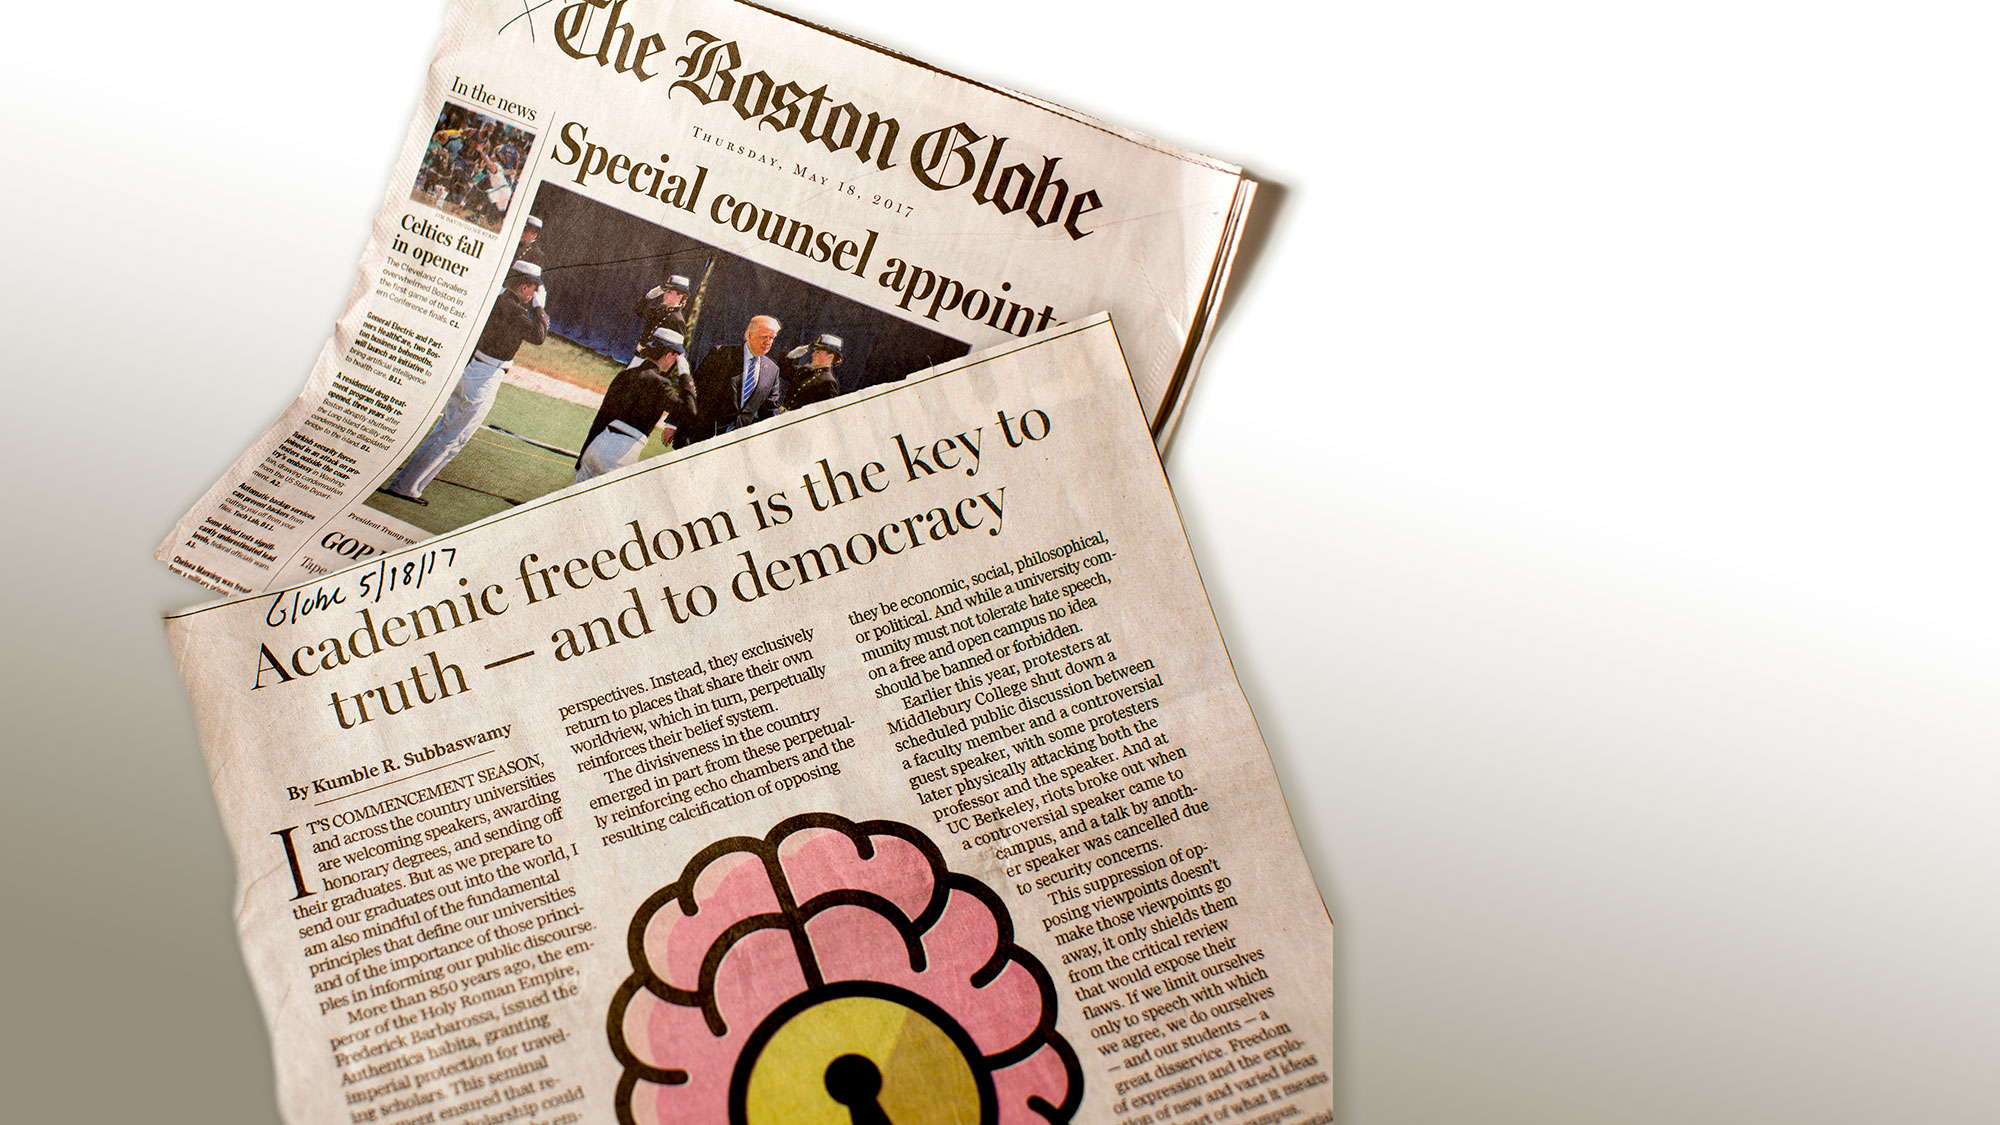 The Boston Globe newspaper featuring an op-ed by UMass Chancellor Kumble Subbaswamy